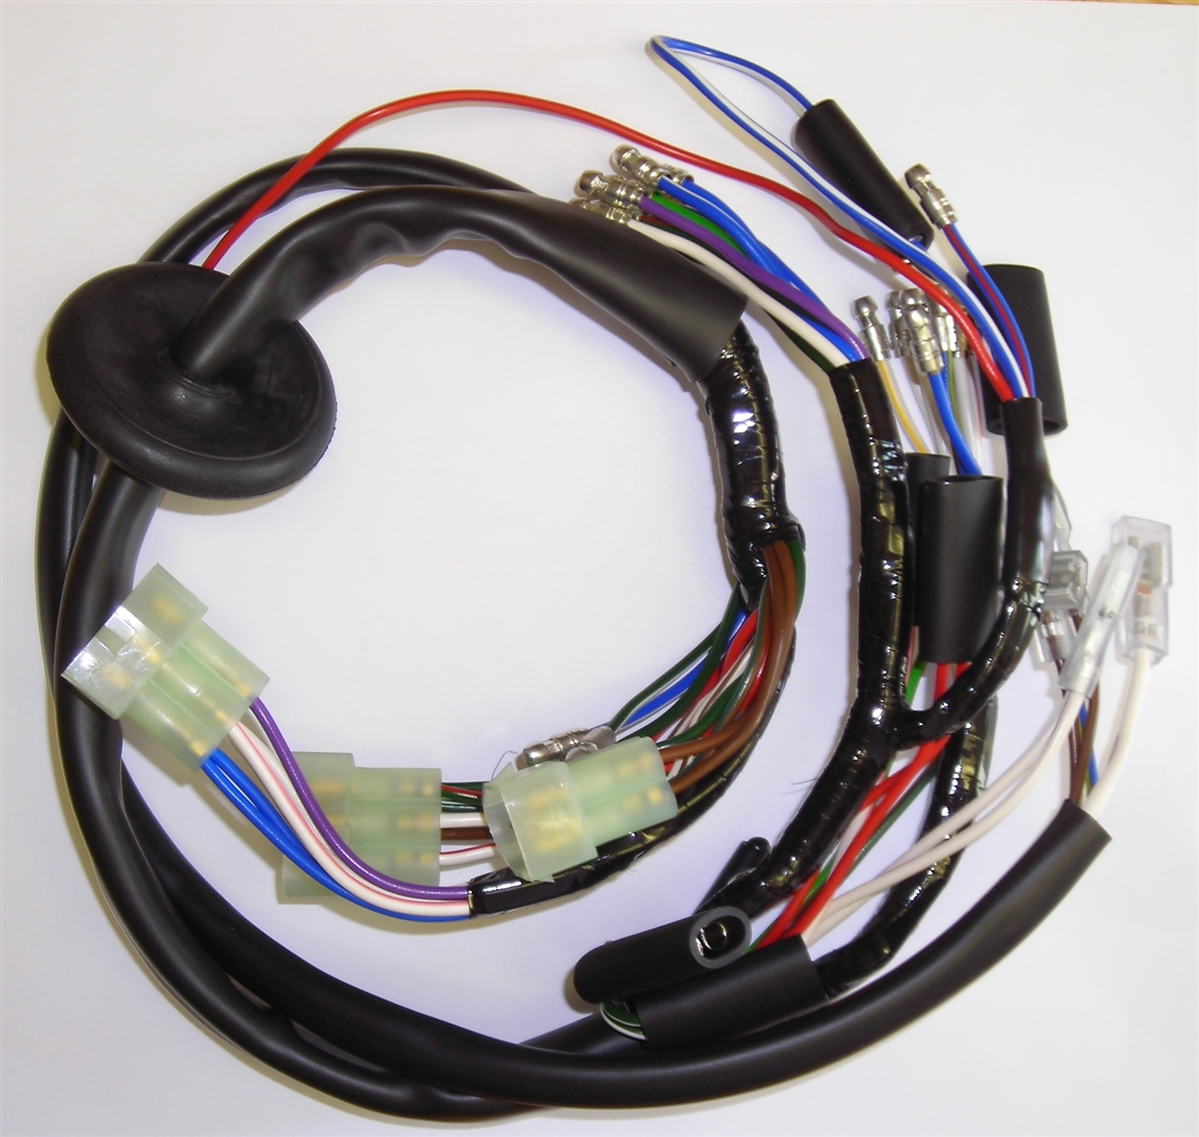 MC116PP 2?1374671892 commando 850cc mk3 motorcycle headlamp wiring harness headlamp wiring harness at reclaimingppi.co